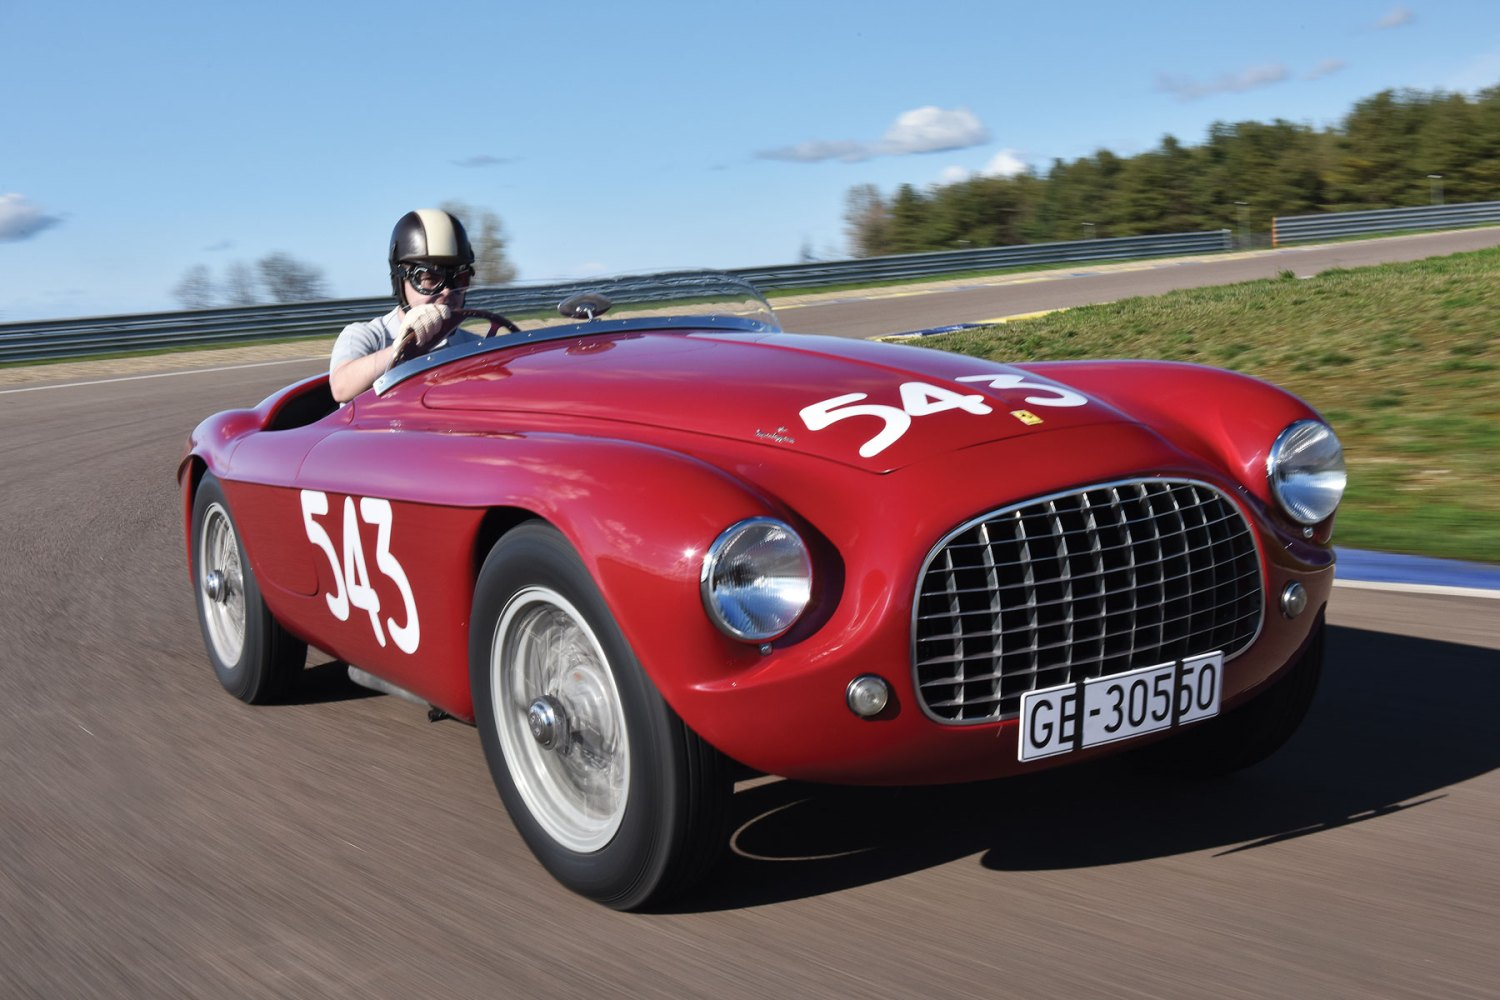 Ferrari 212 Export Barchetta: €6,720,000